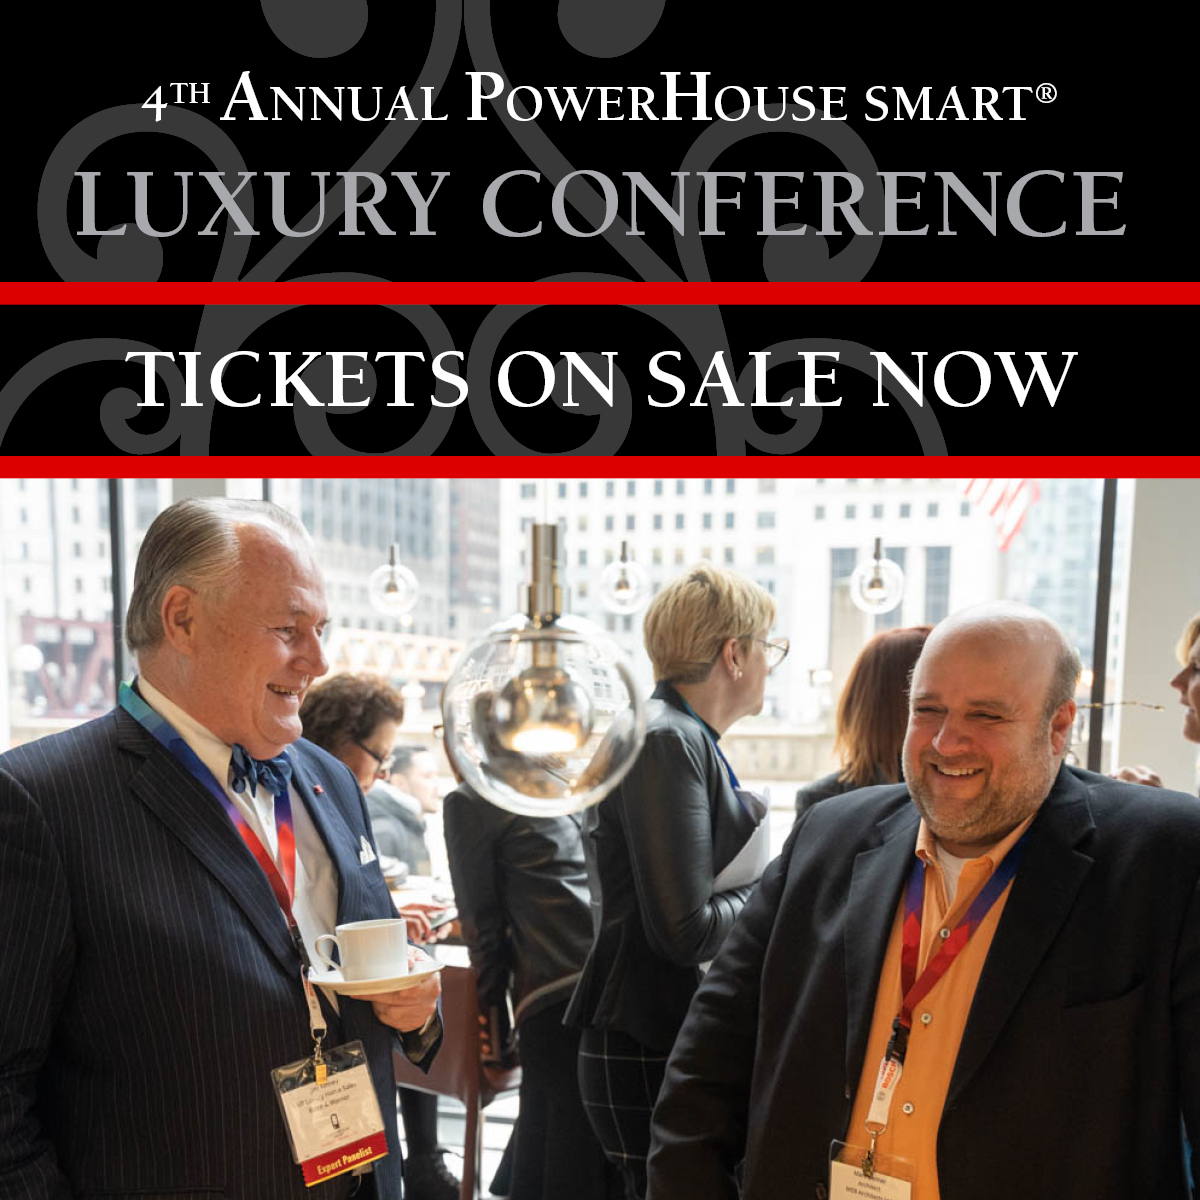 Luxury Conference Tickets